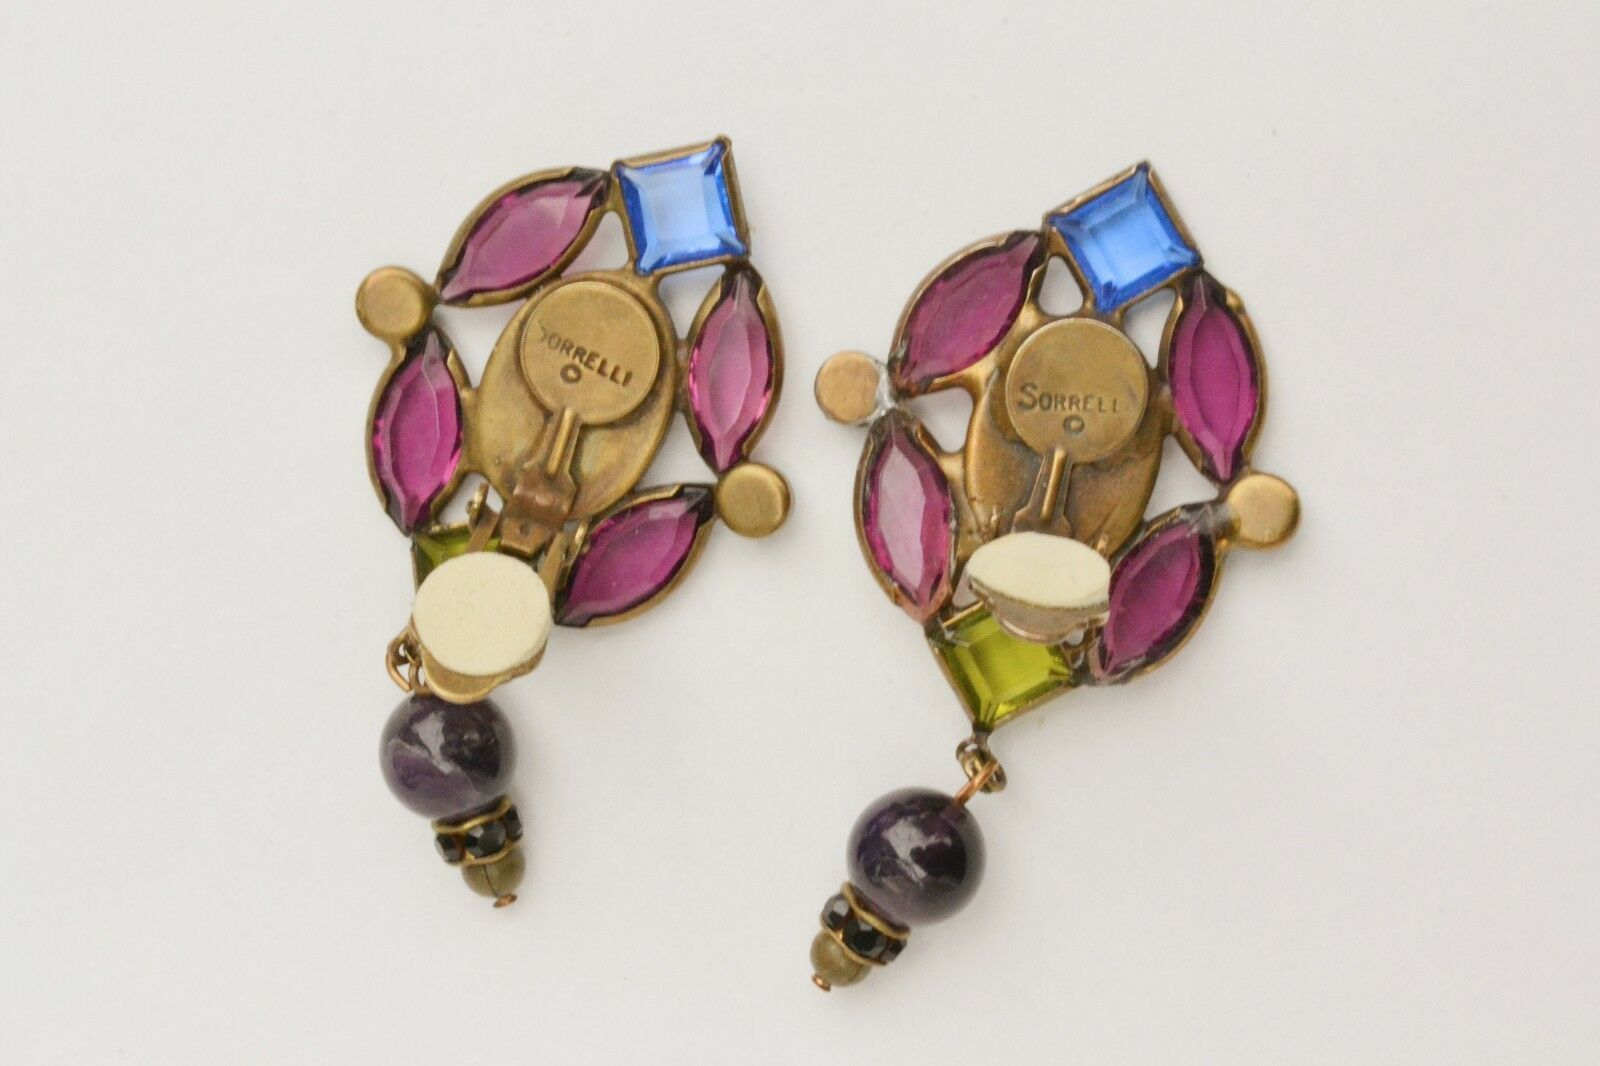 Vintage Sorelli clip earrings runway stained glass style bezel set open back big